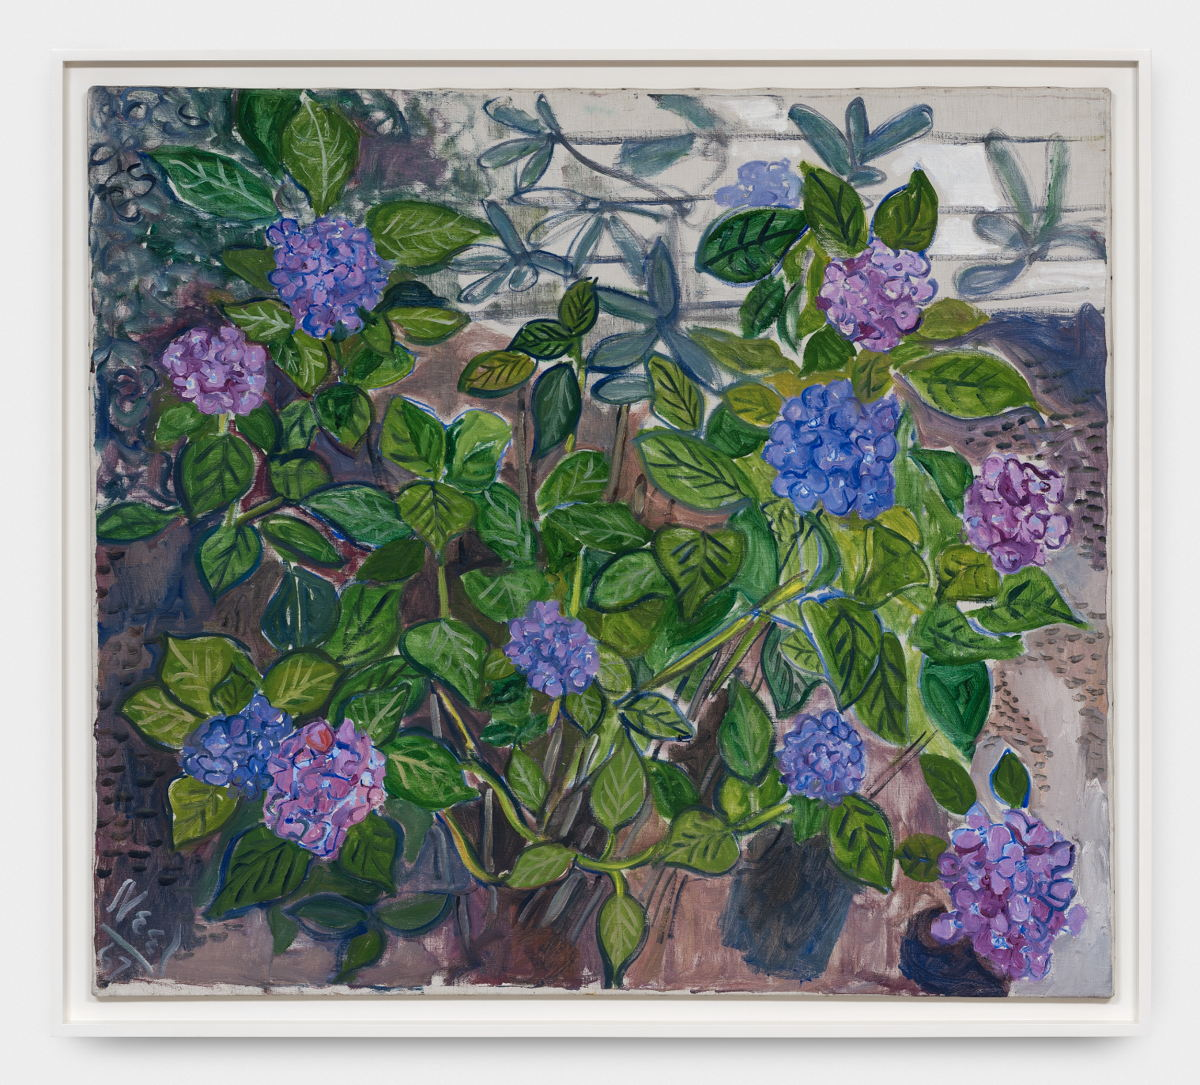 Alice Neel (1900-1984) Hydrangeas, 1967. Oil on canvas. 101,6 x 114,3 cm. Photo-credit: HV-studio, Brussels Courtesy: the Estate of Alice Neel and Xavier Hufkens, Brussels